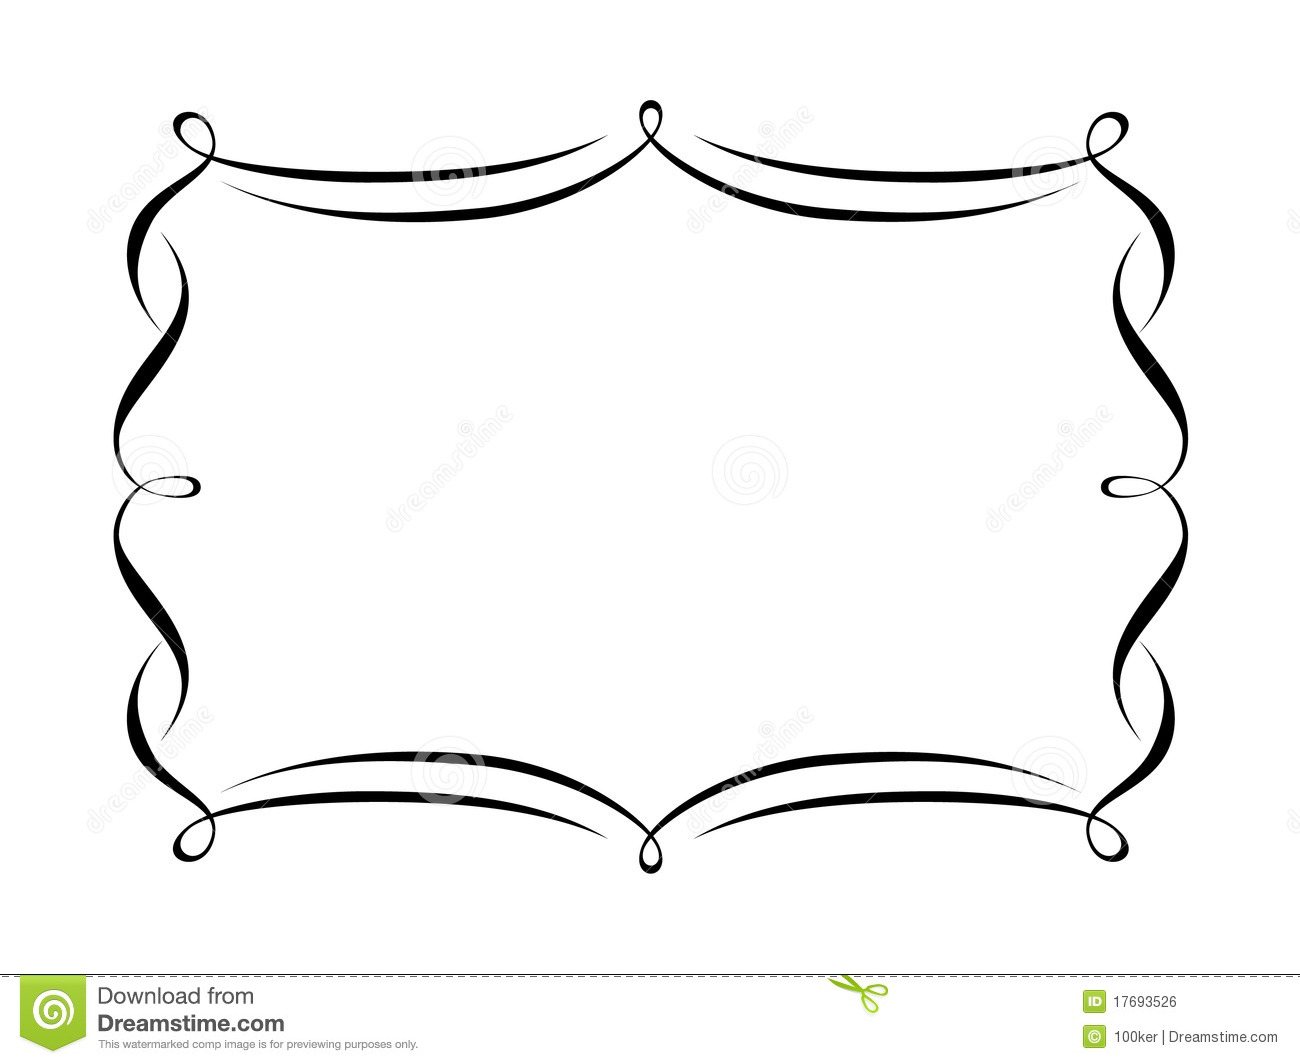 Fancy brackets clip art.